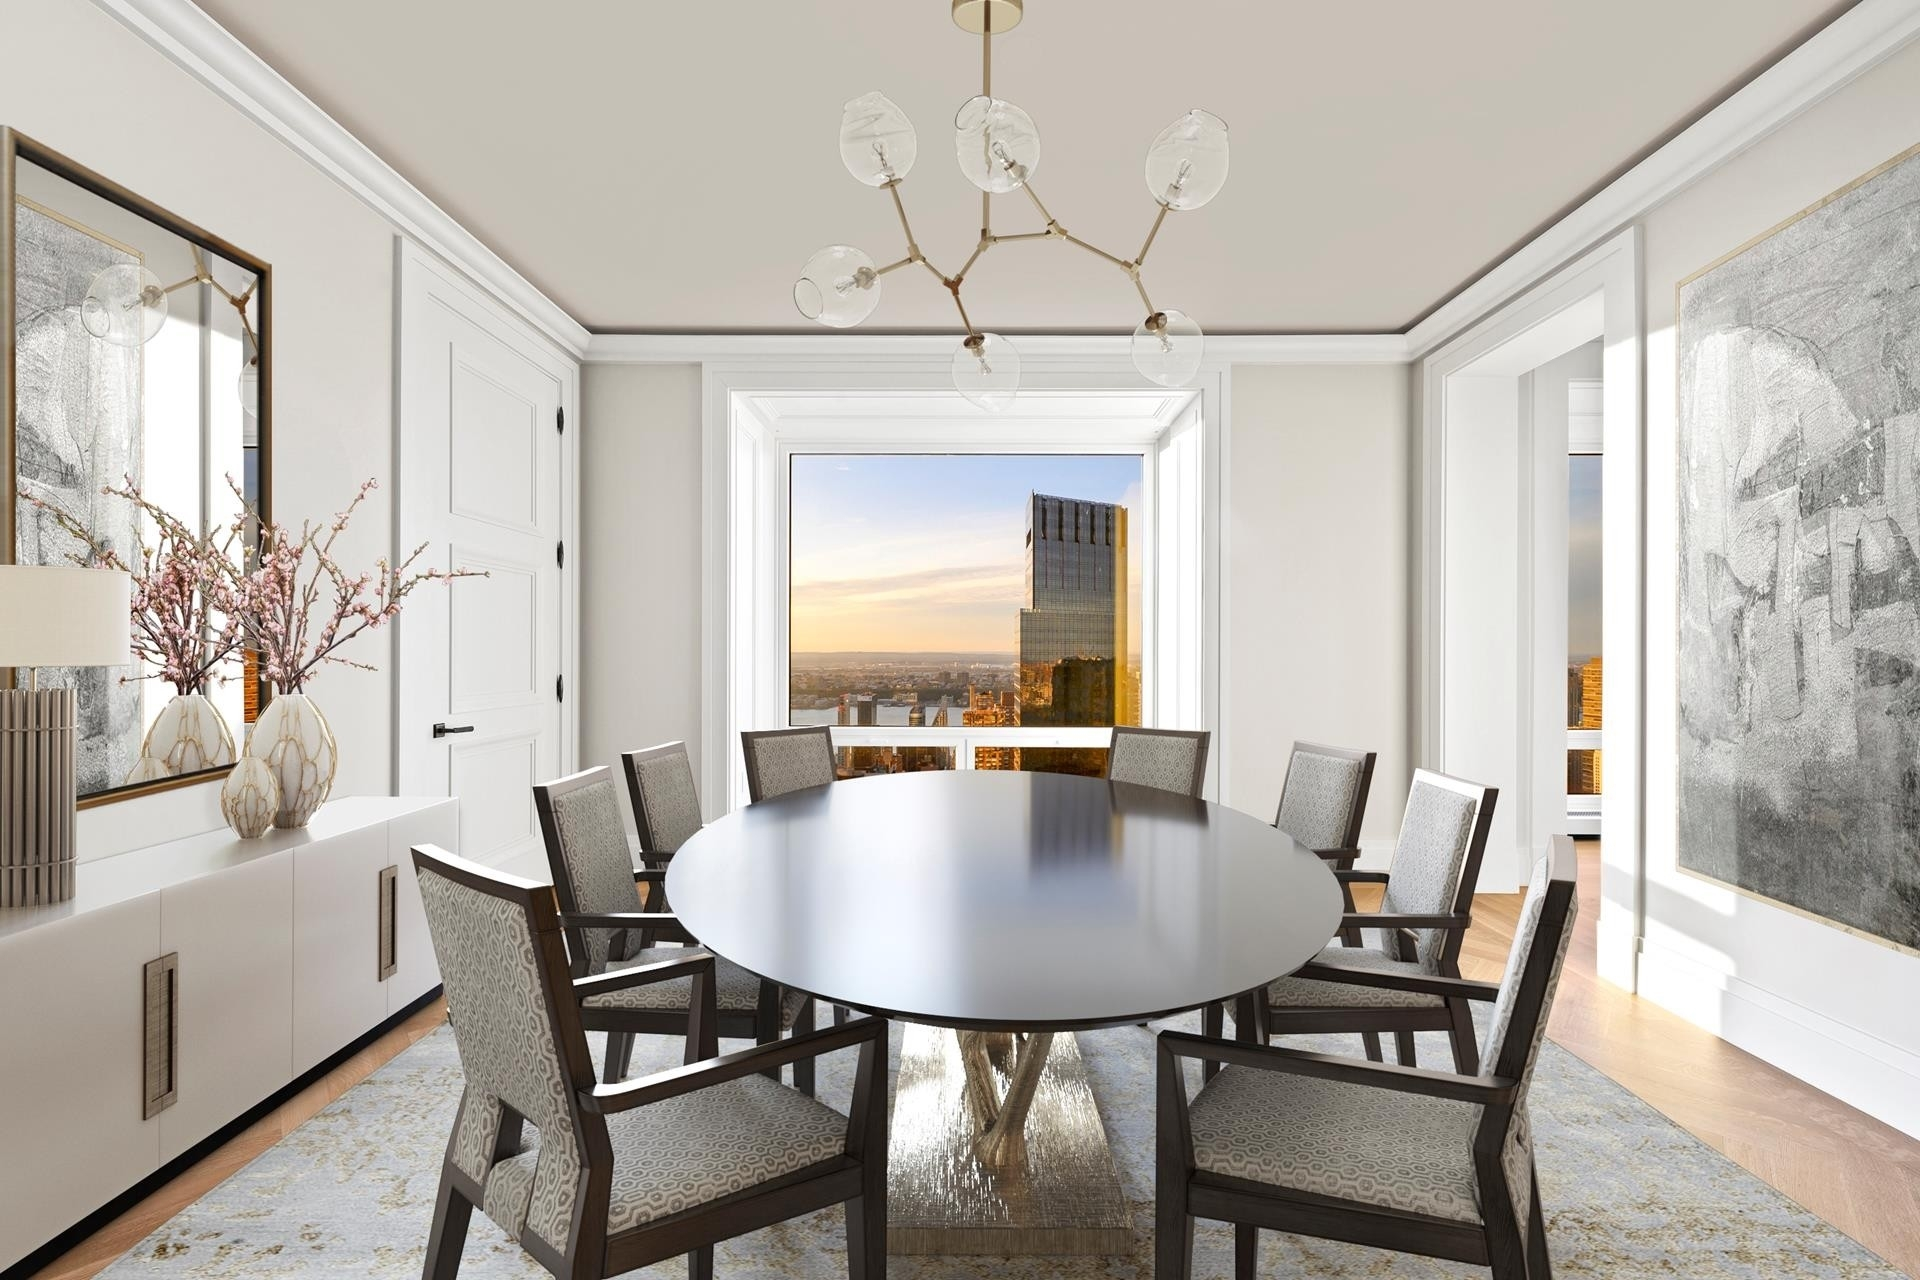 3. Condominiums for Sale at 220 CPS, 220 CENTRAL PARK S, 54/55A Central Park South, New York, NY 10019